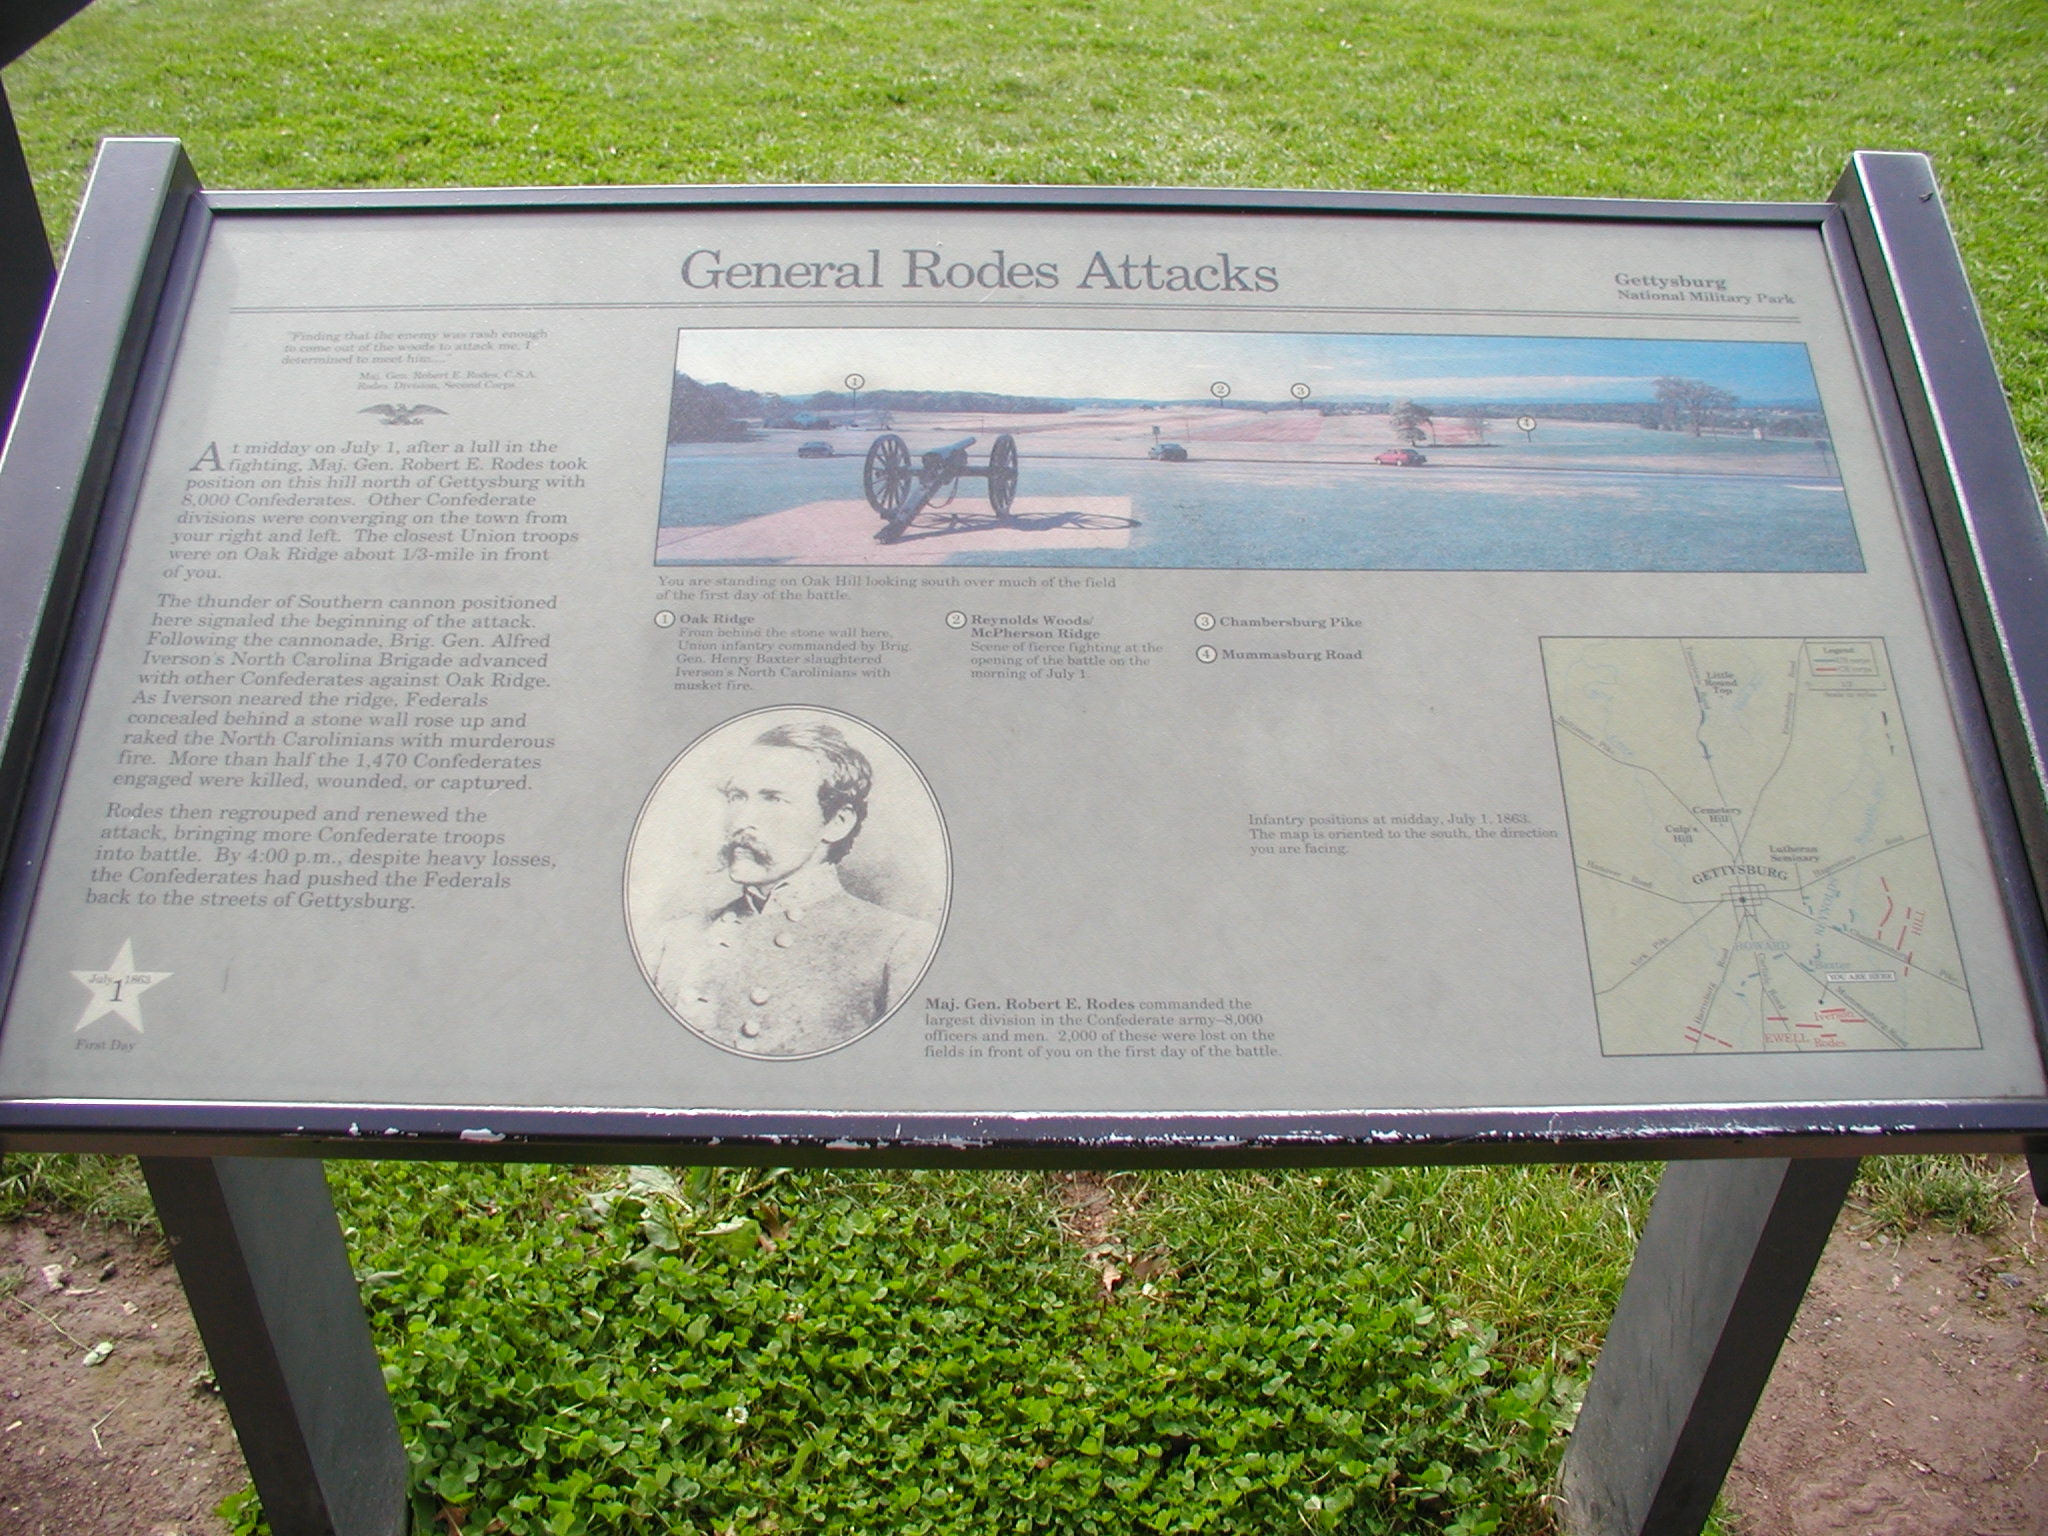 General Rodes Attackes Marker